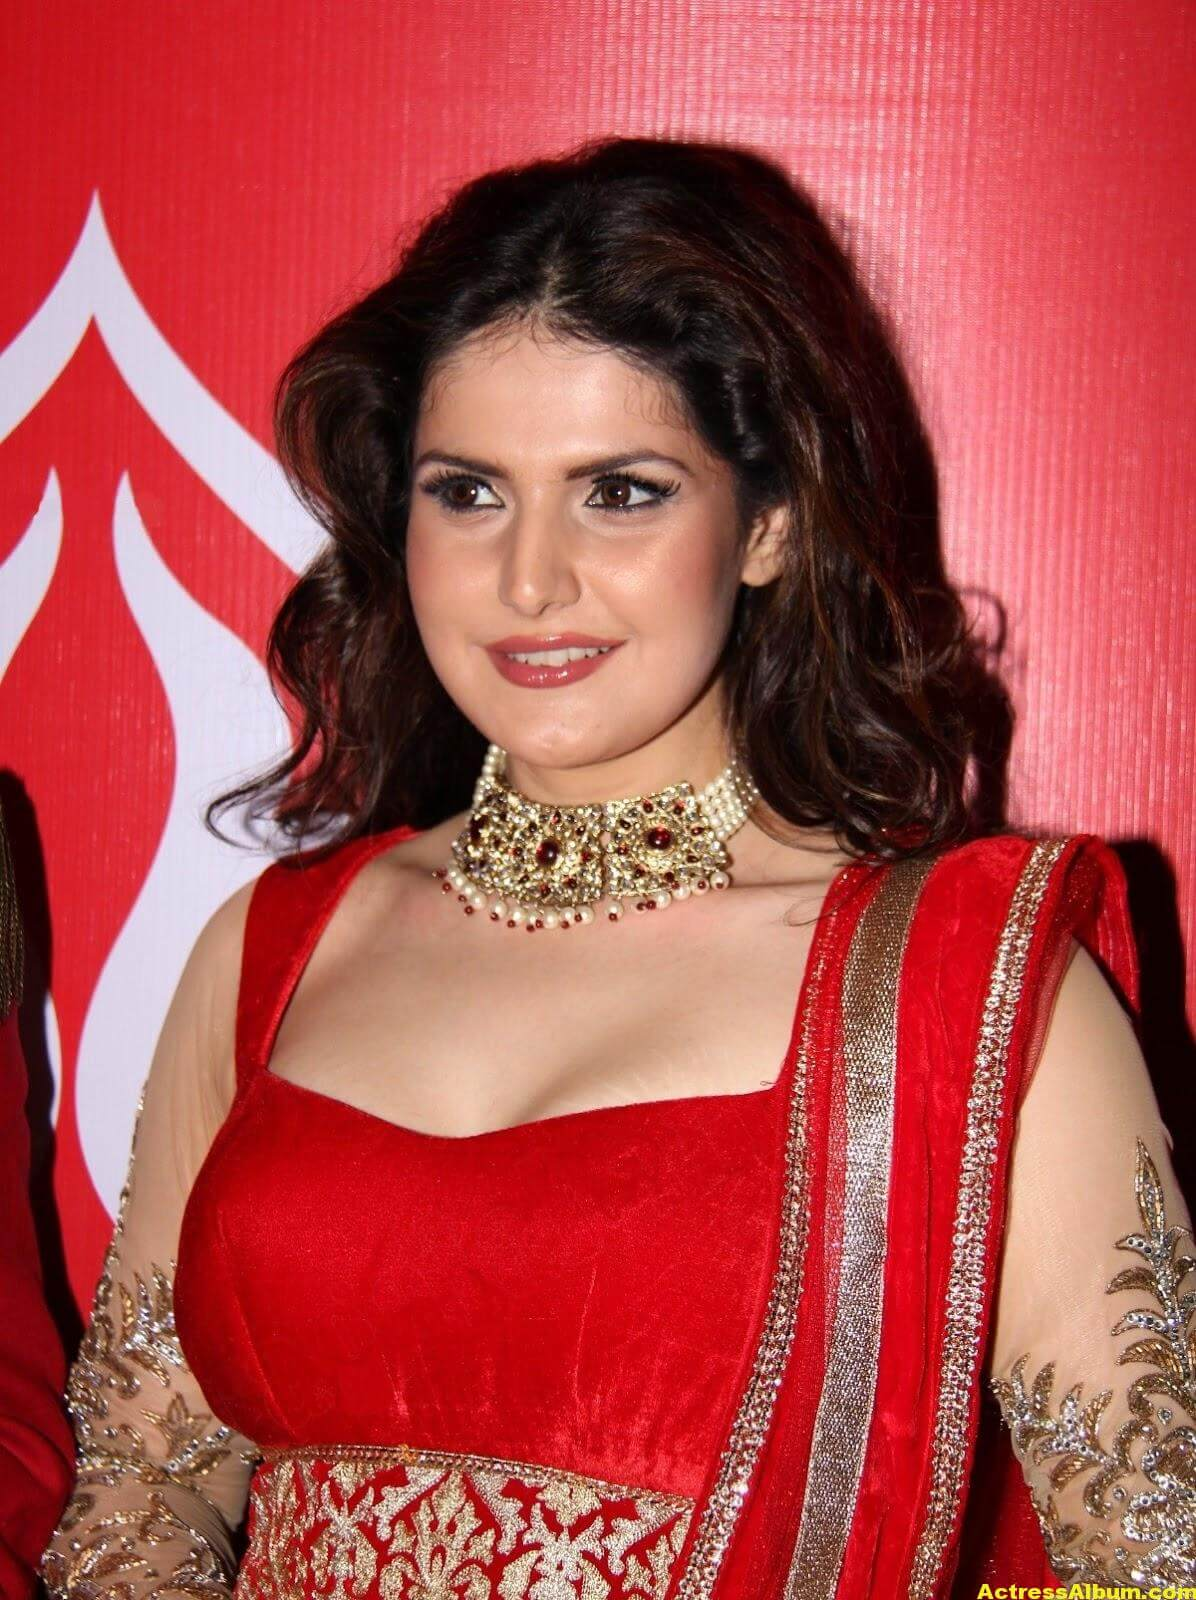 Zarine Khan Hot Photoshoot In Red Dress 3